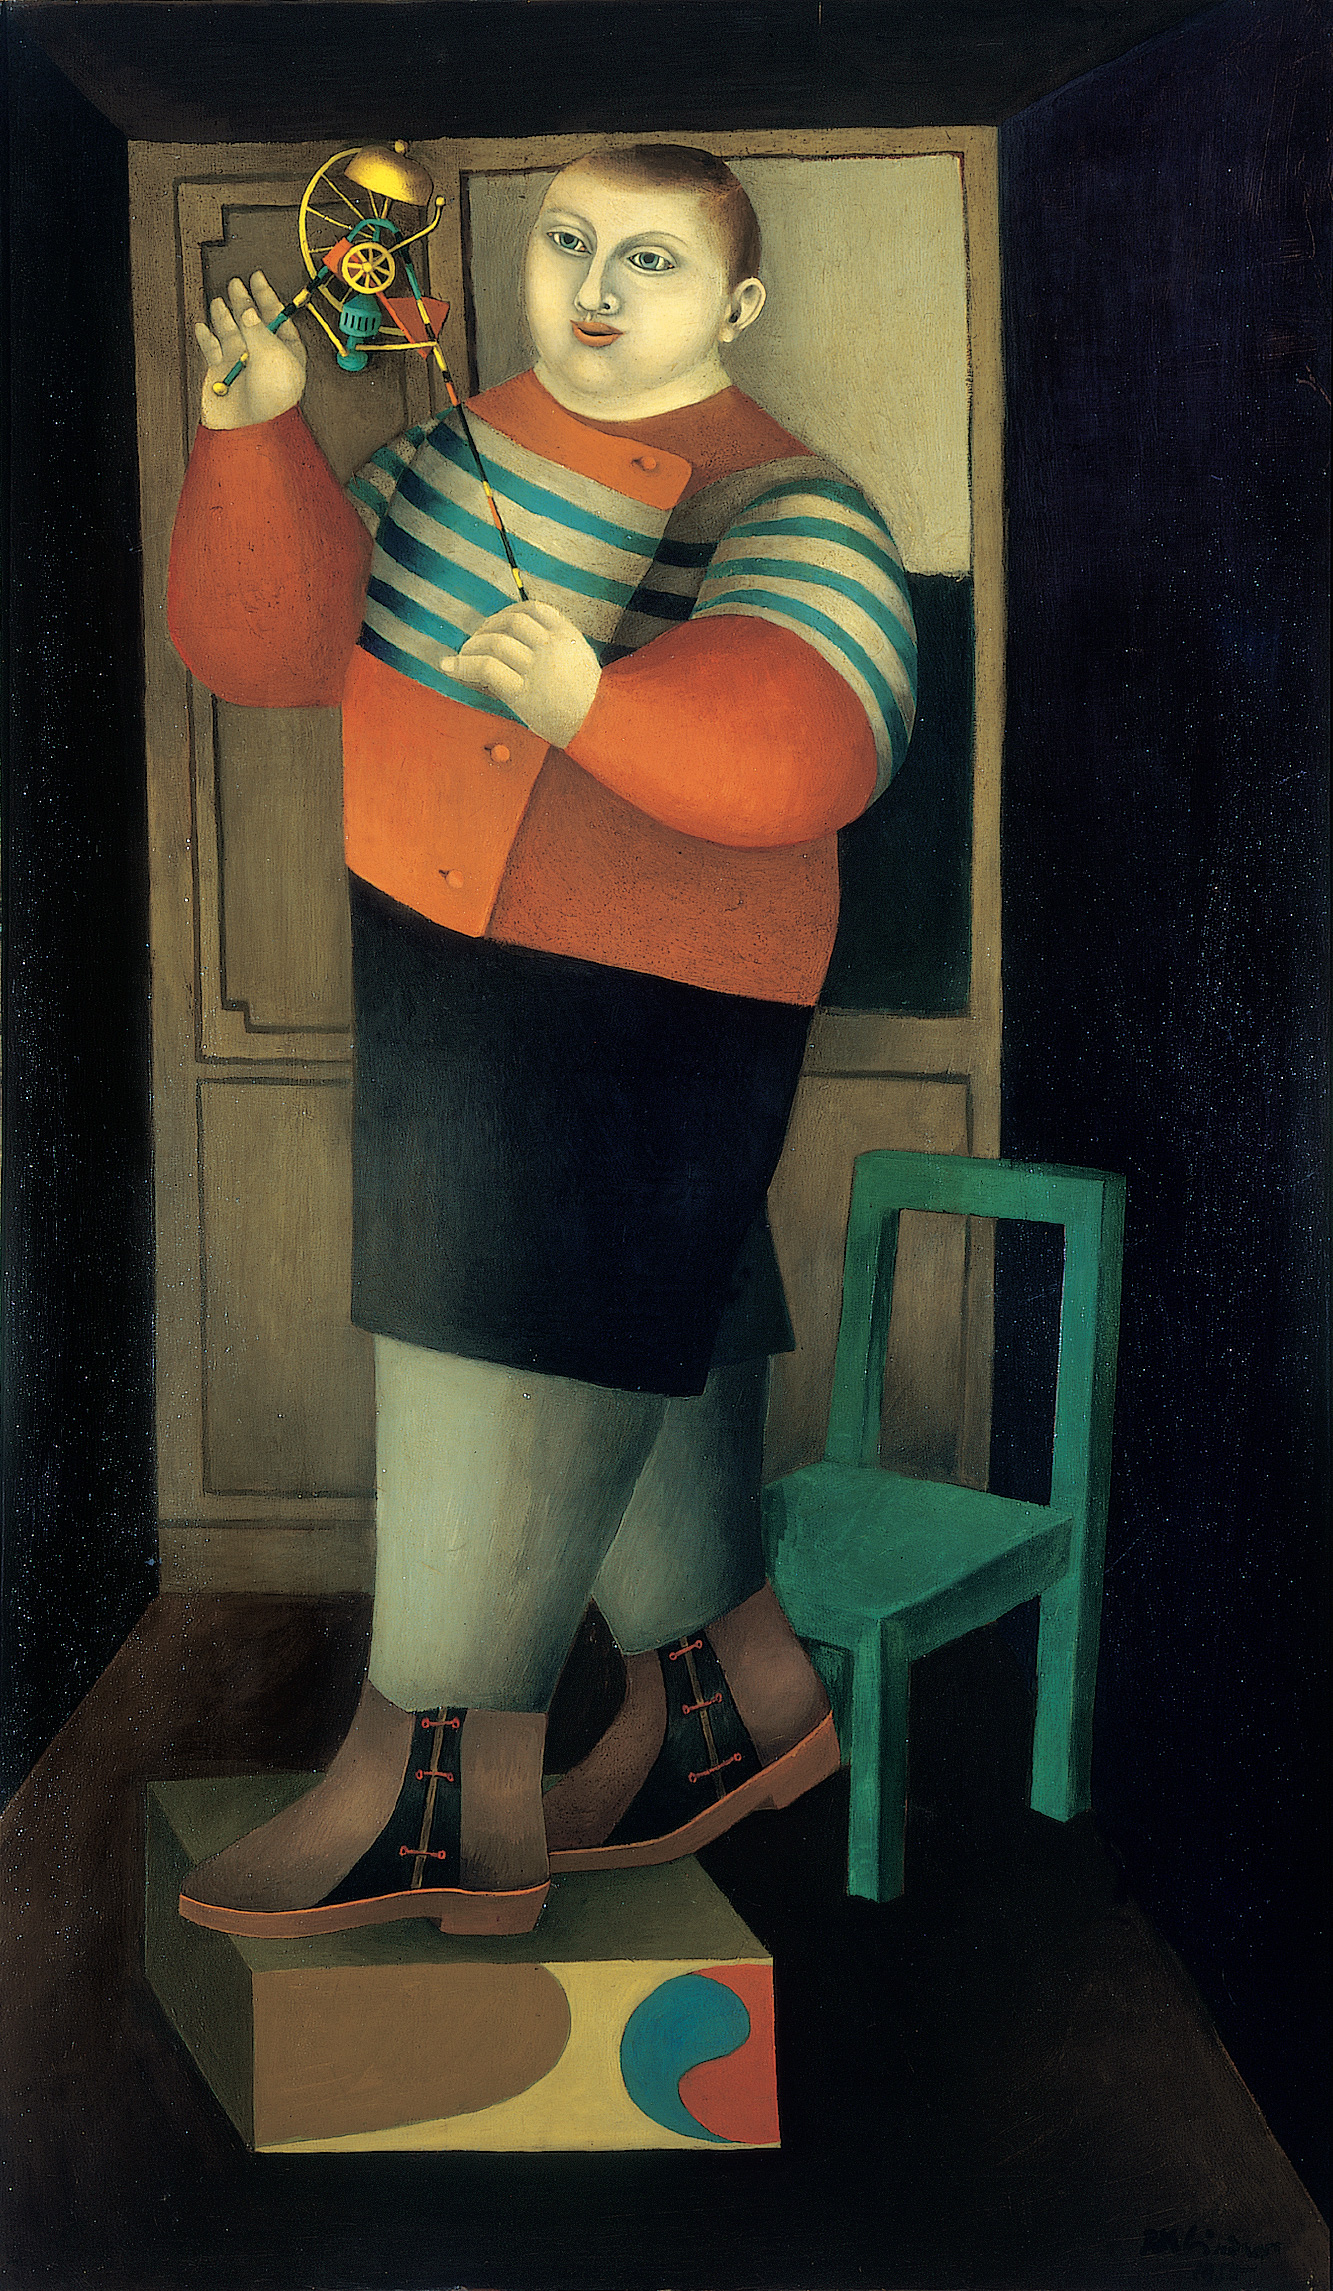 Boy with Machine, 1955 grand format